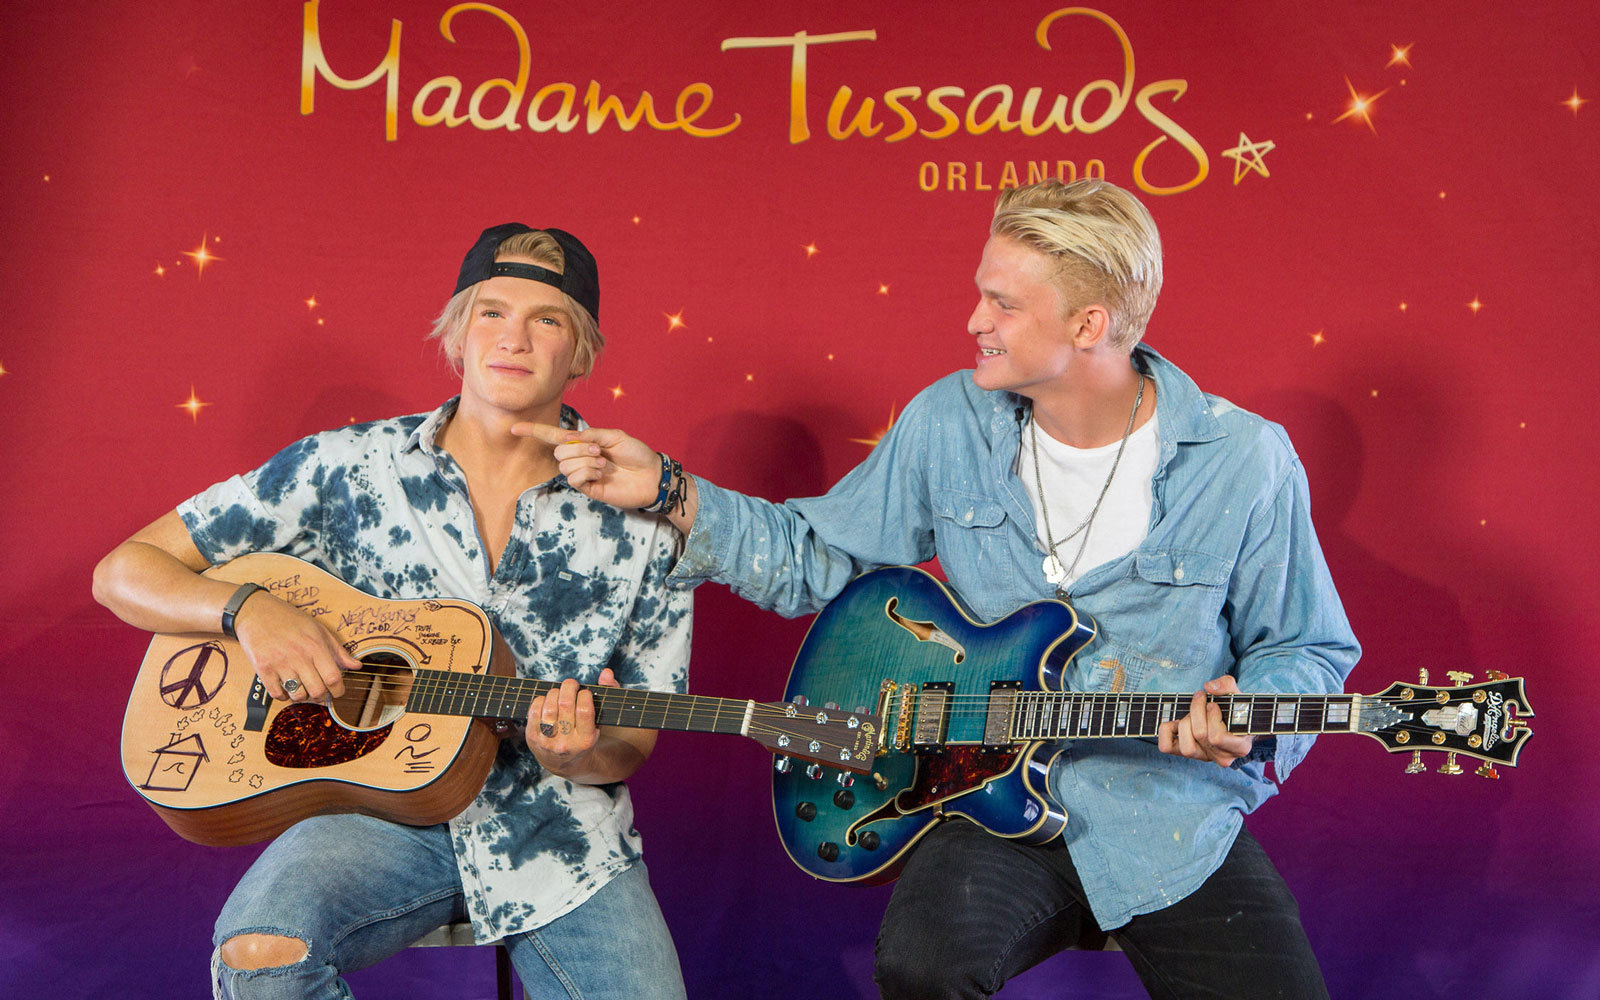 Madame Tussauds Wax Museum in Orlando, Florida